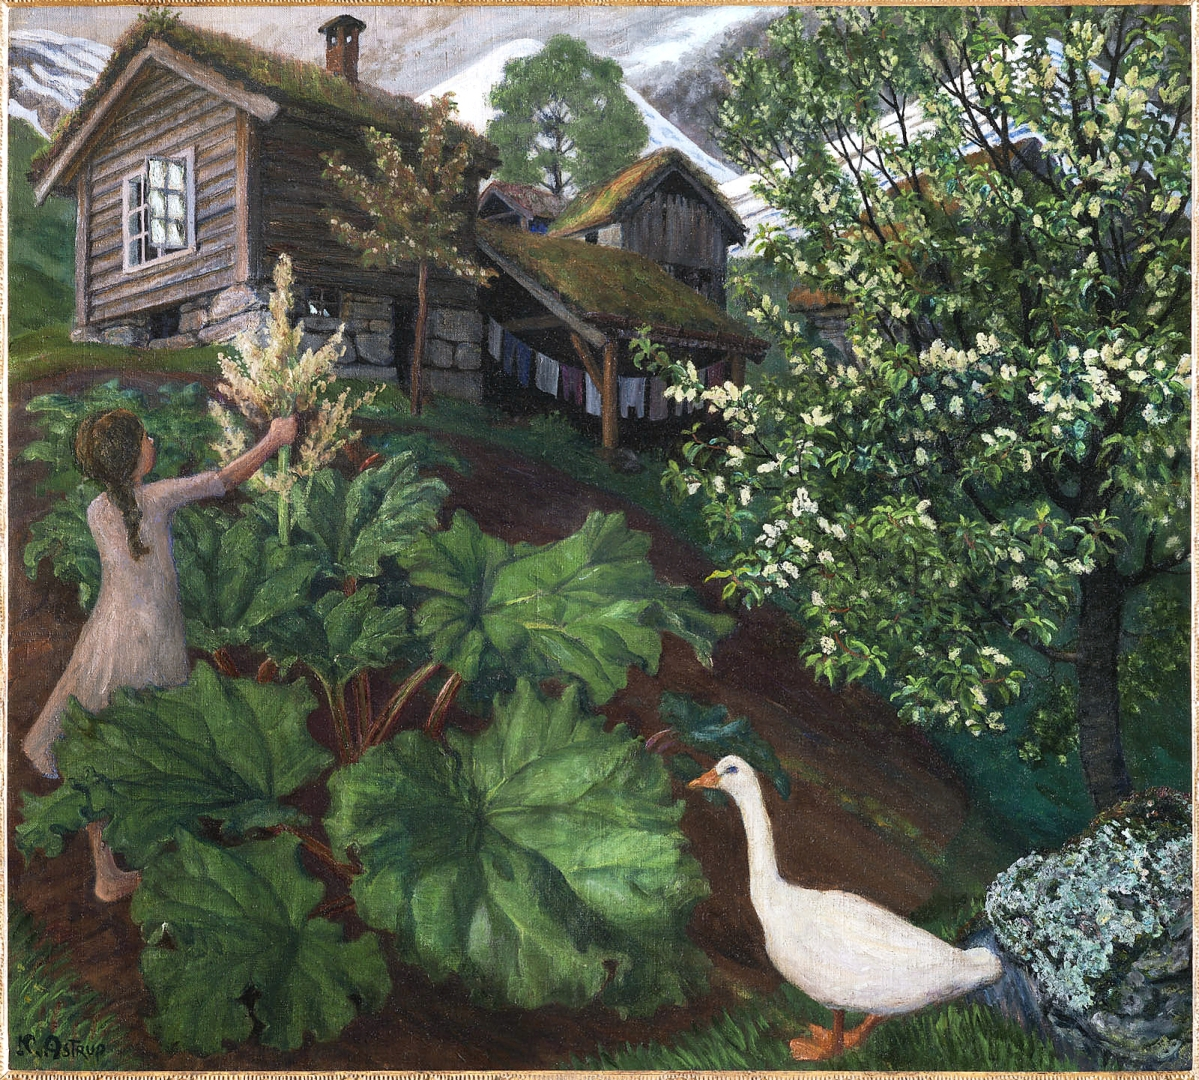 """""""Night Light, Rhubarb, Goose and Bird Cherry Tree"""" by Nikolai Astrup, circa 1927. Oil on canvas. Private collection."""